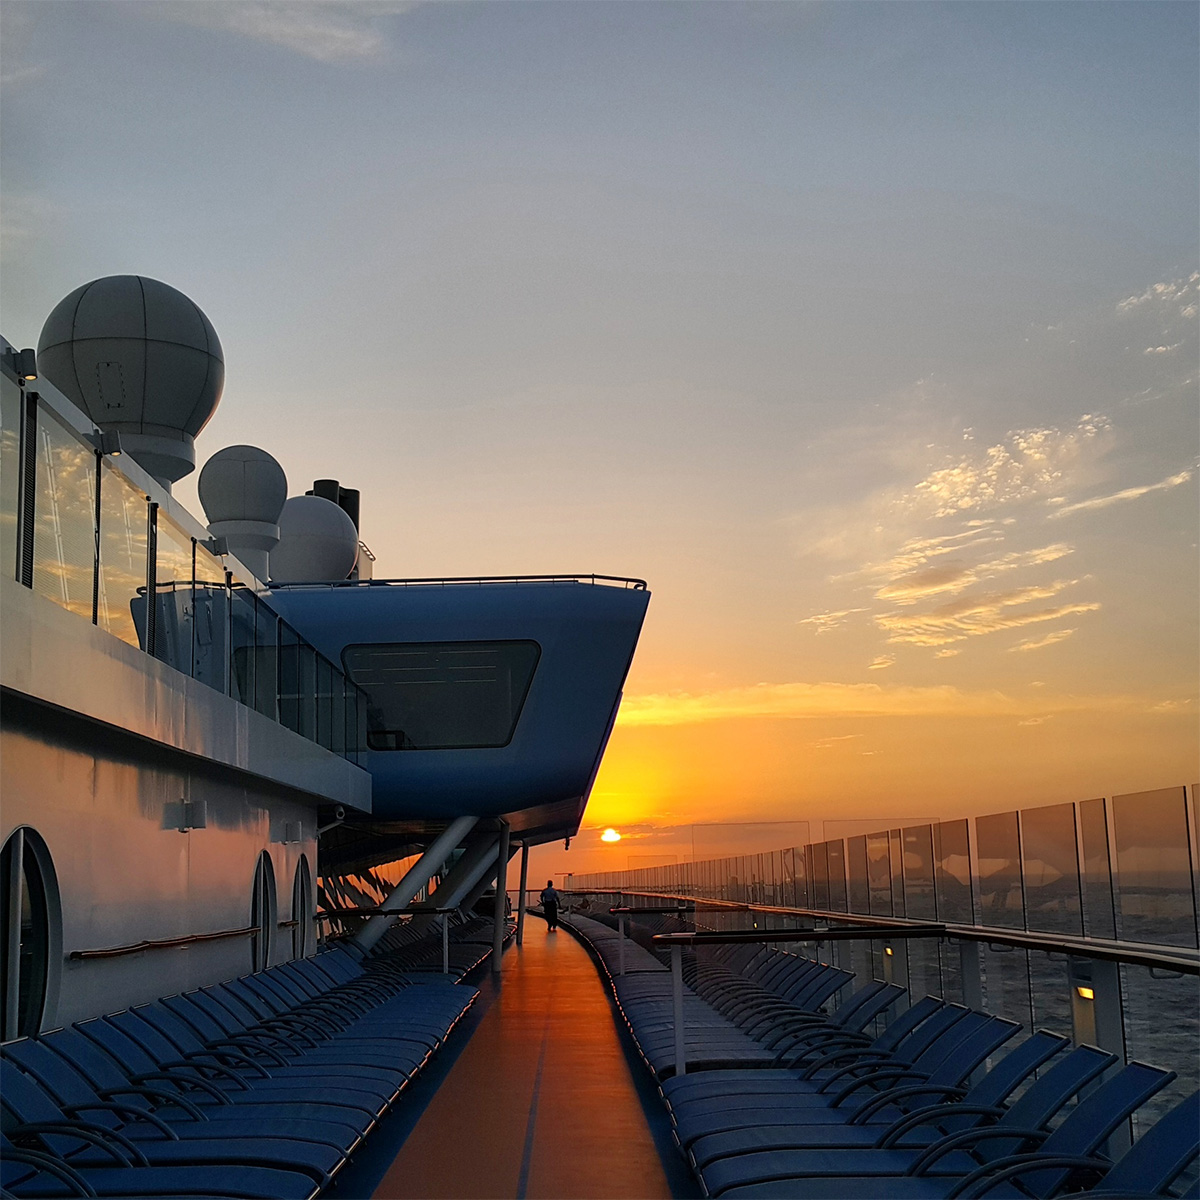 Resorts & Casinos: Royal Caribbean Cruises Ltd. (NYSE:RCL) Position of the day